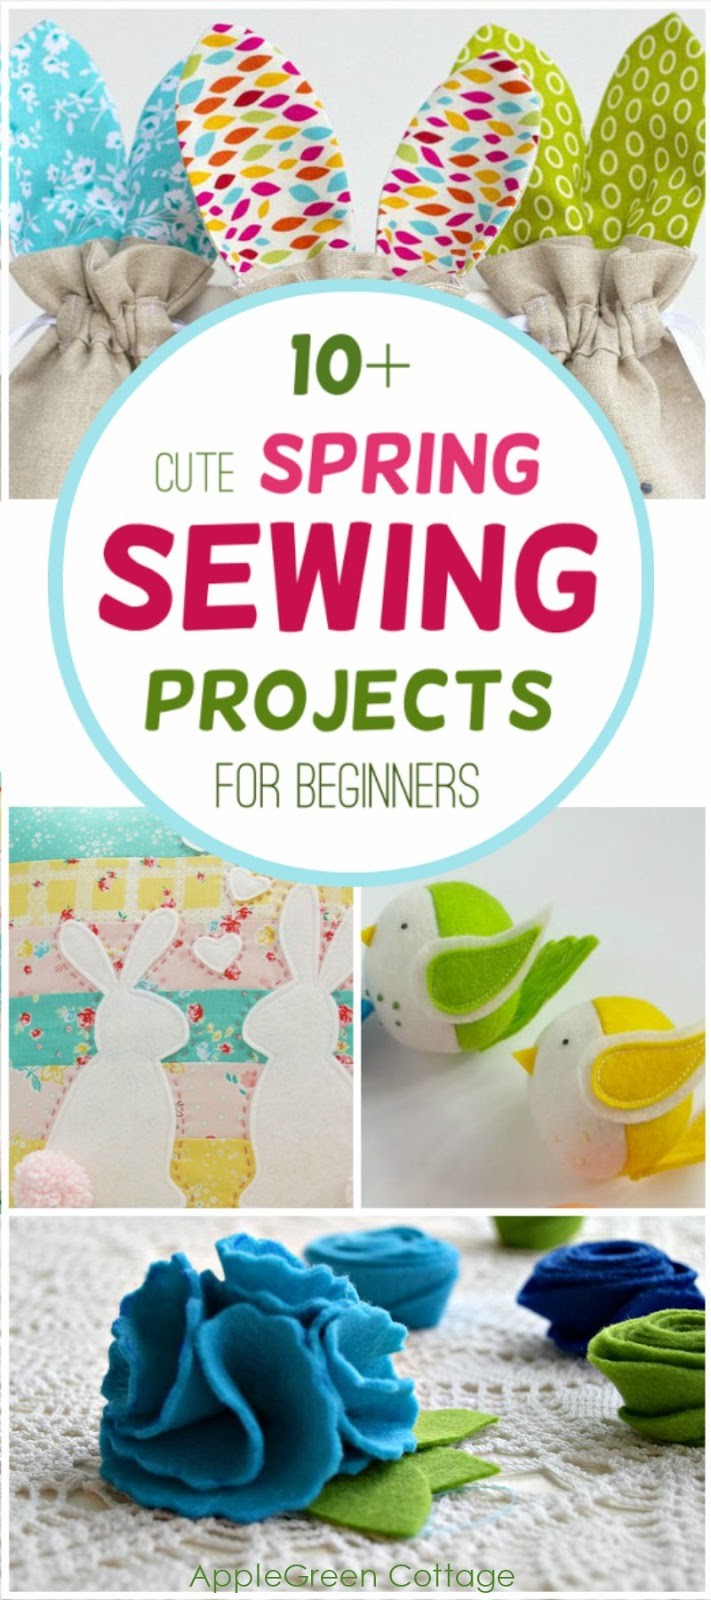 10 Fun Spring Sewing Projects For Beginners  AppleGreen